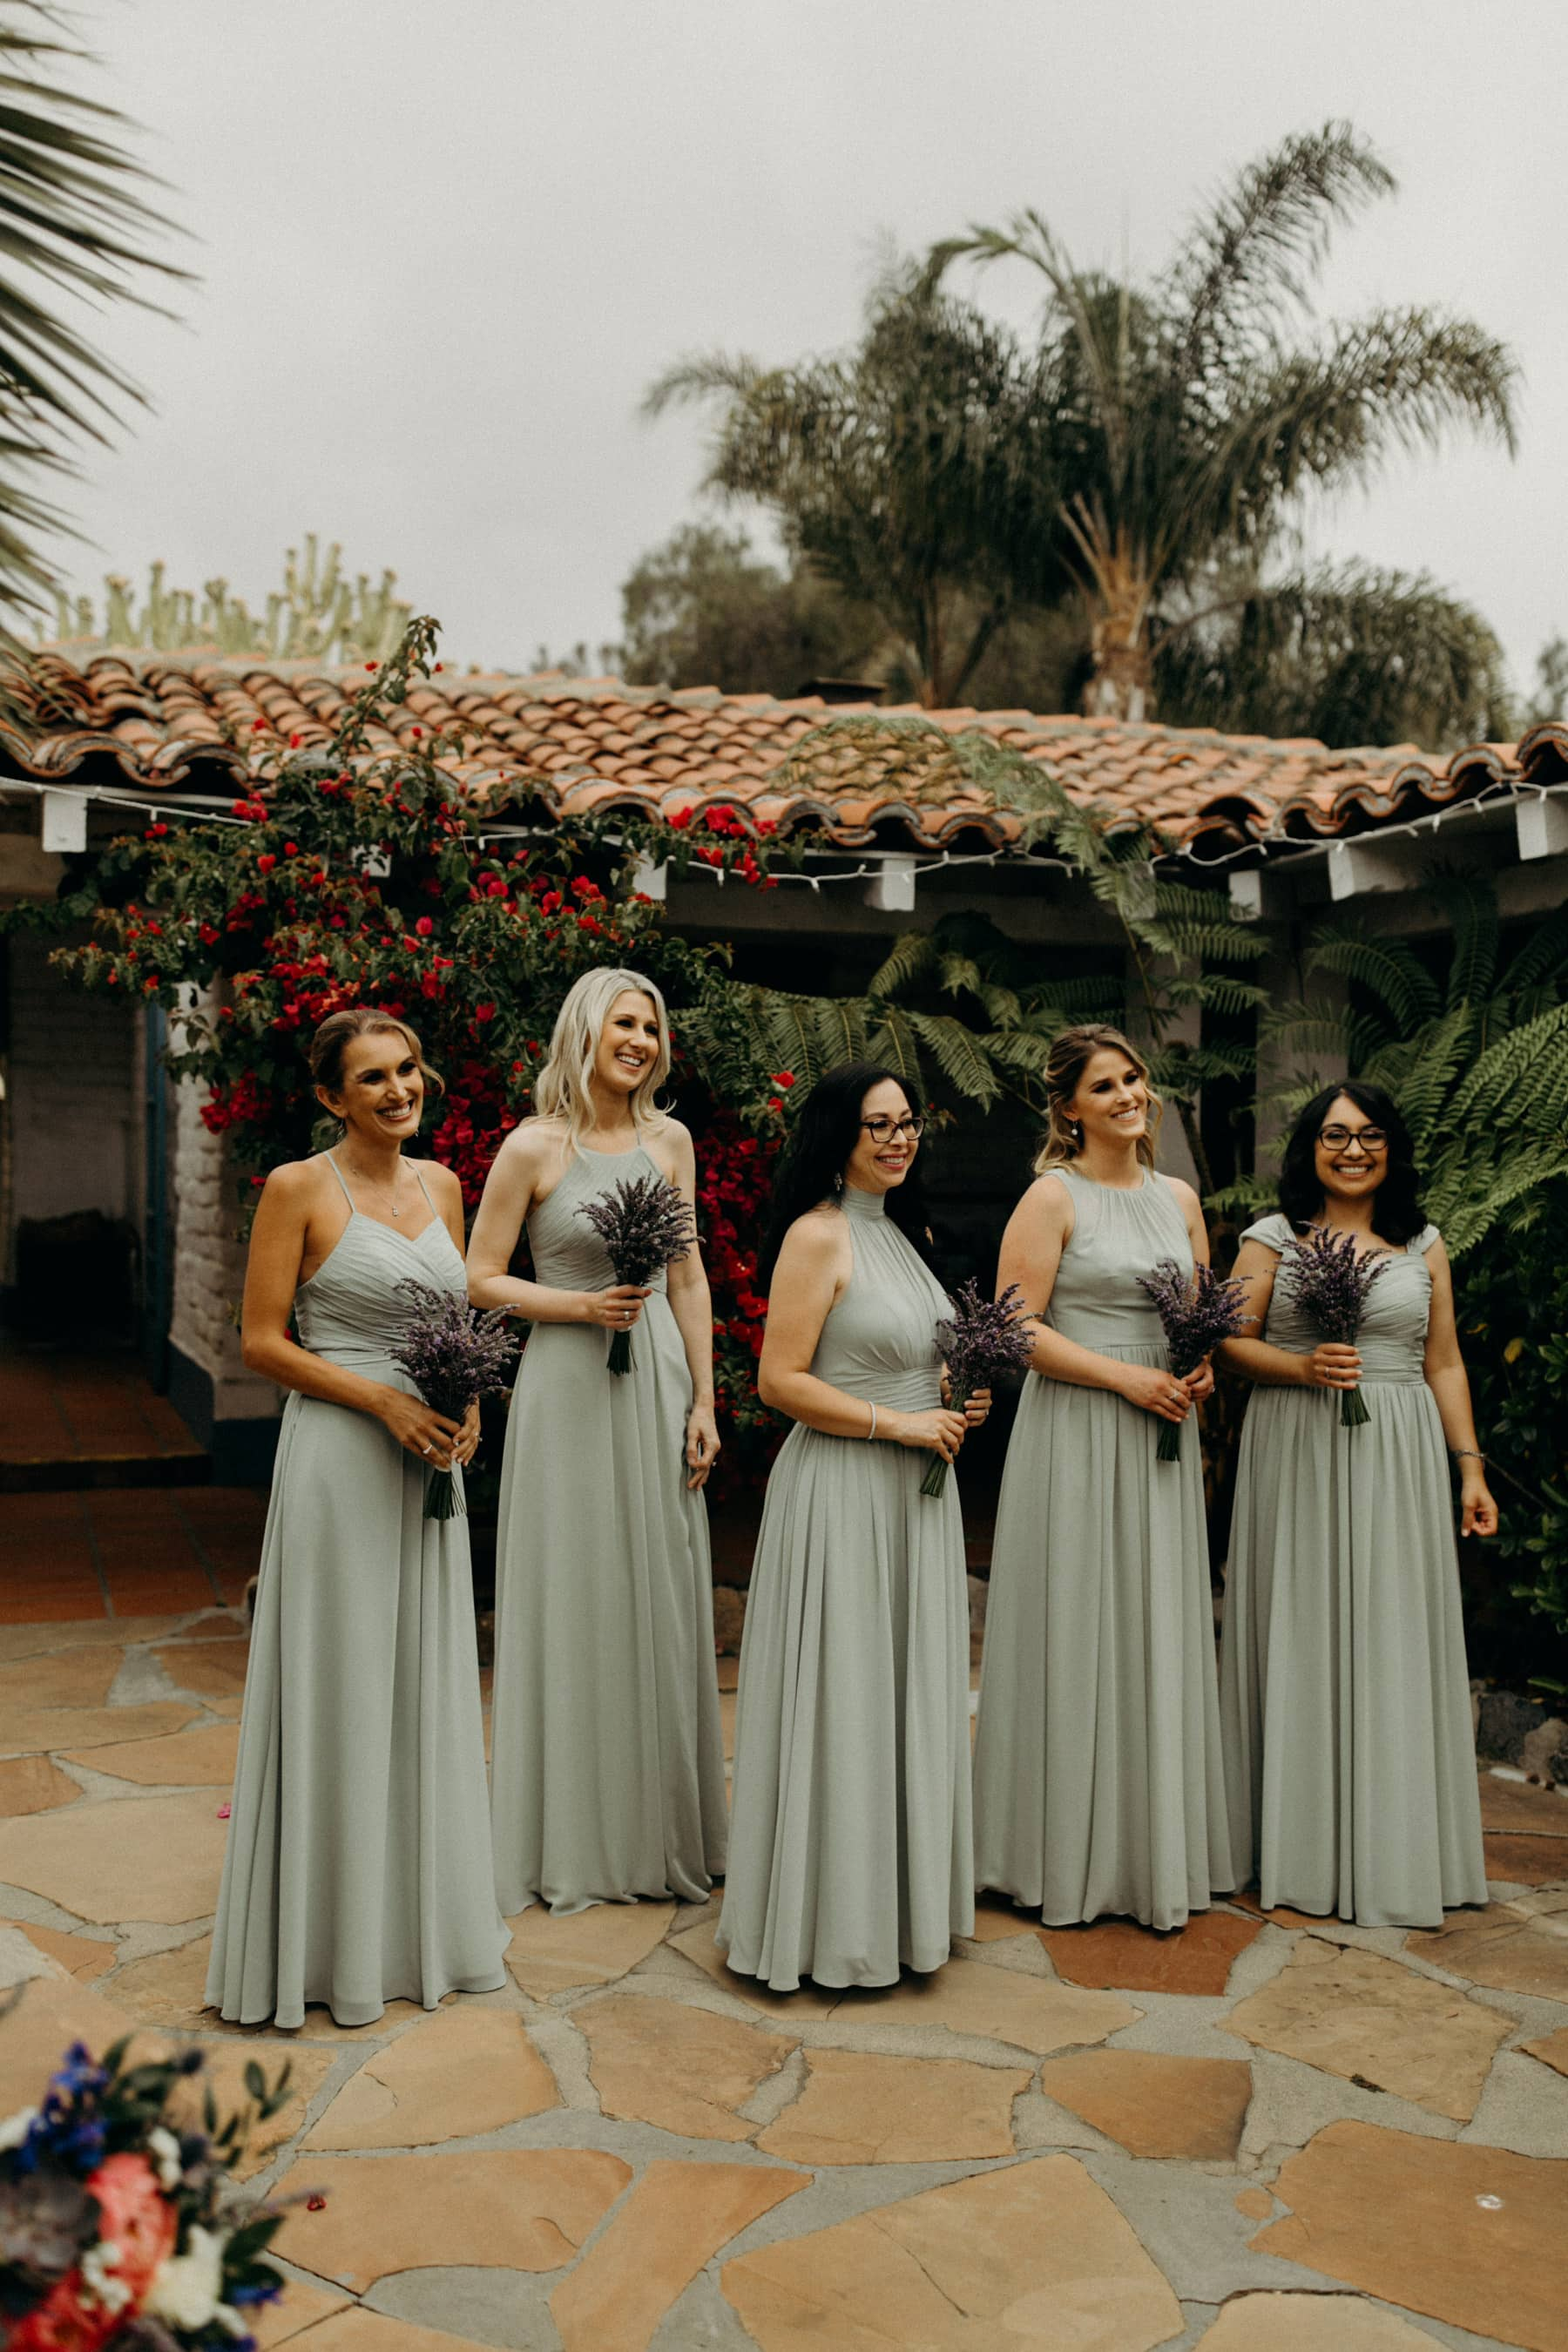 sage bridesmaids dresses with lavender bouquets